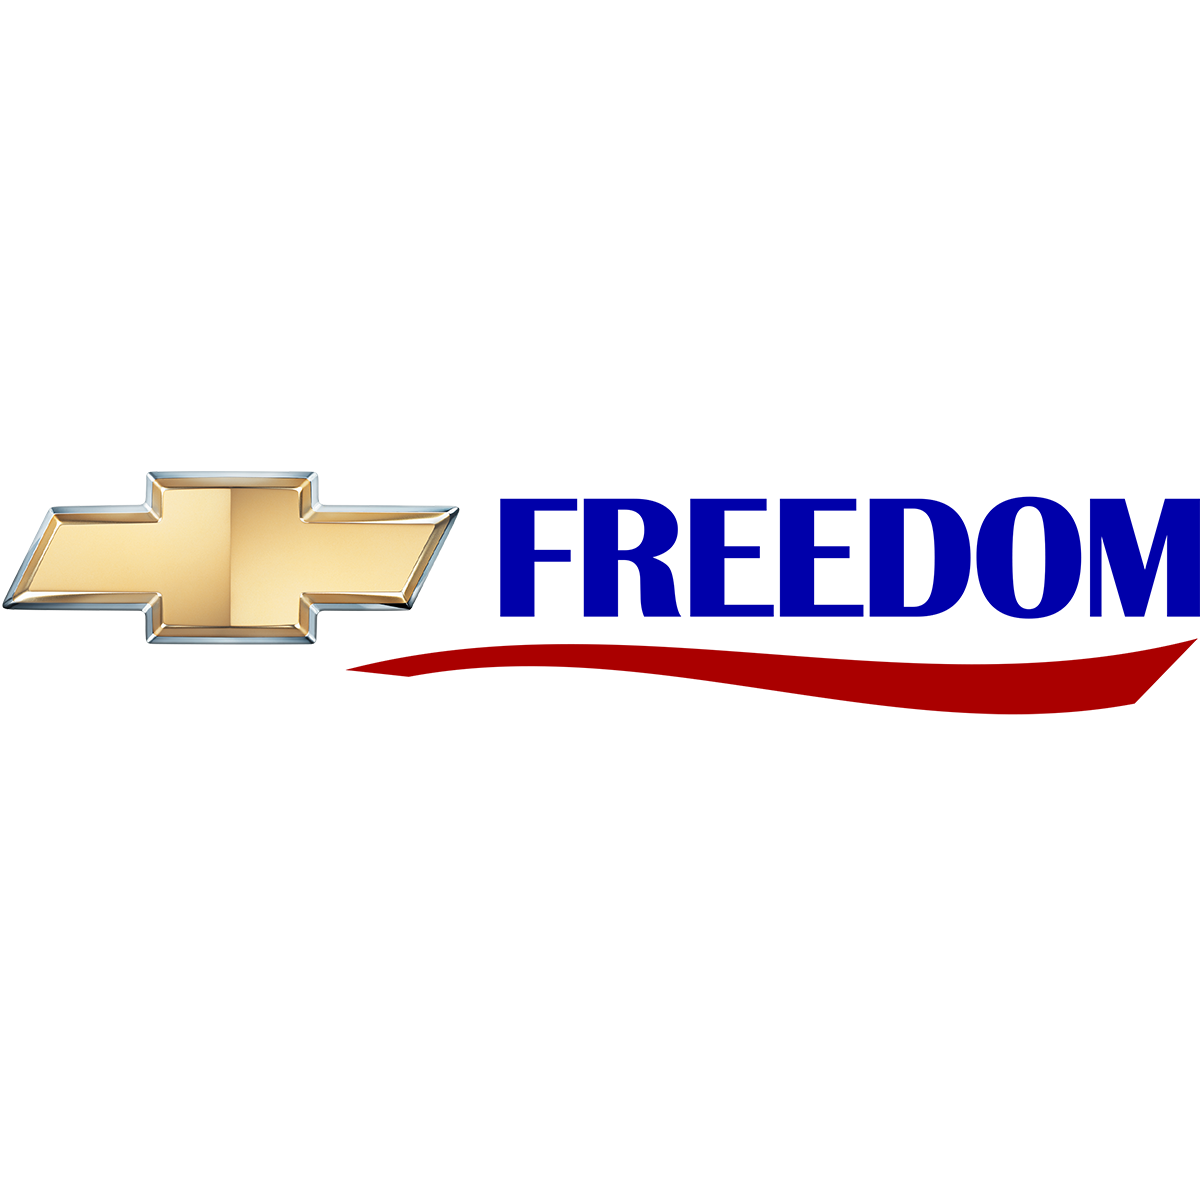 Freedom chevrolet in fremont mi auto dealers yellow for Fremont motors service department